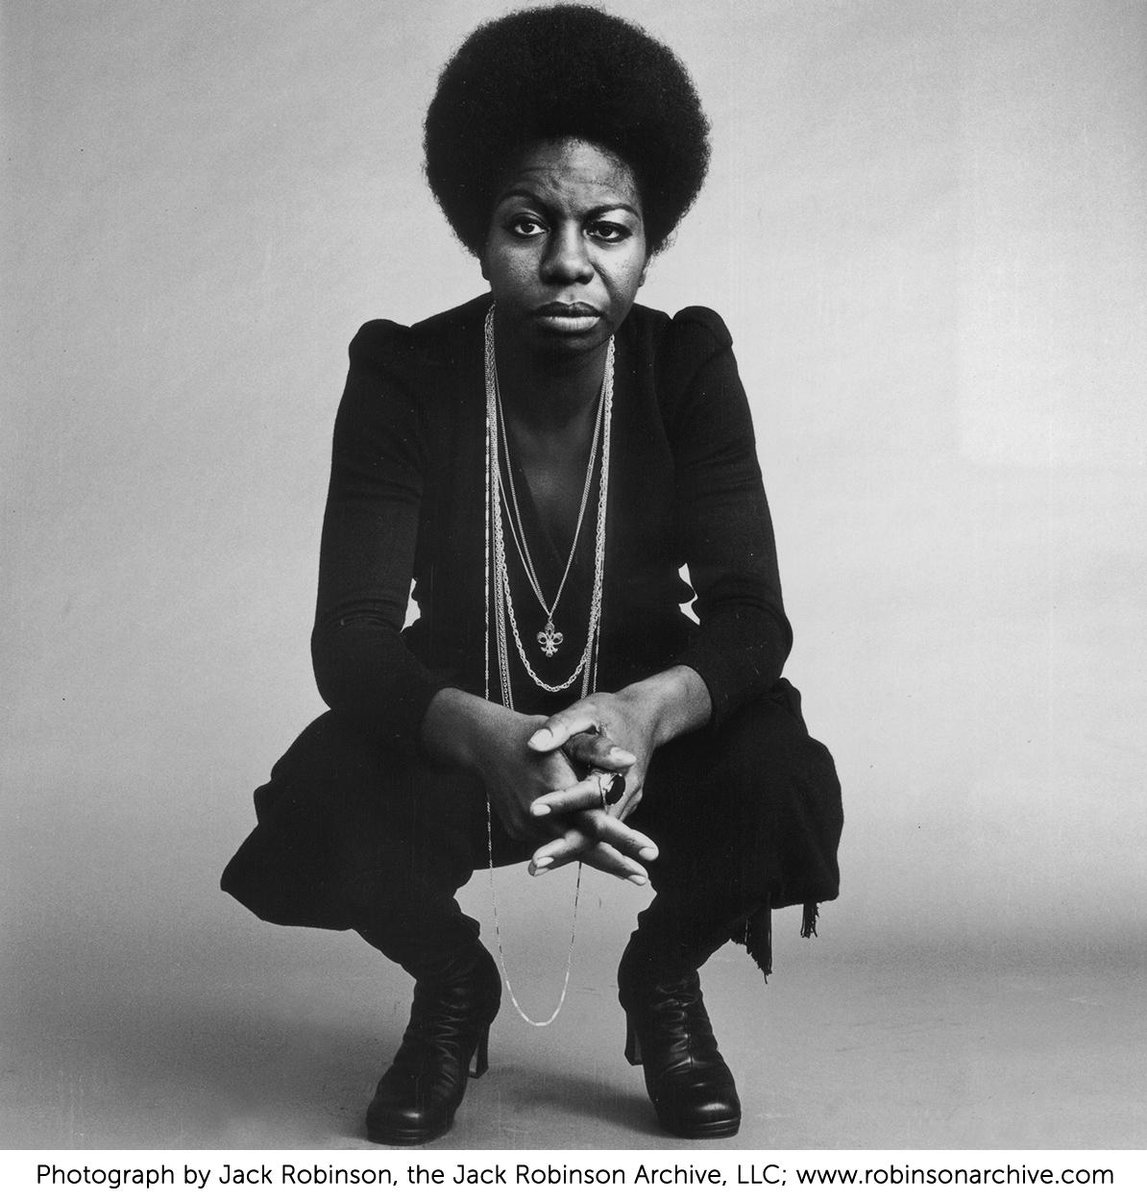 At 12, black singer/pianist Nina Simone refused to play at her recital until her parents were moved back to the front http://t.co/RP1Gd9hhLU